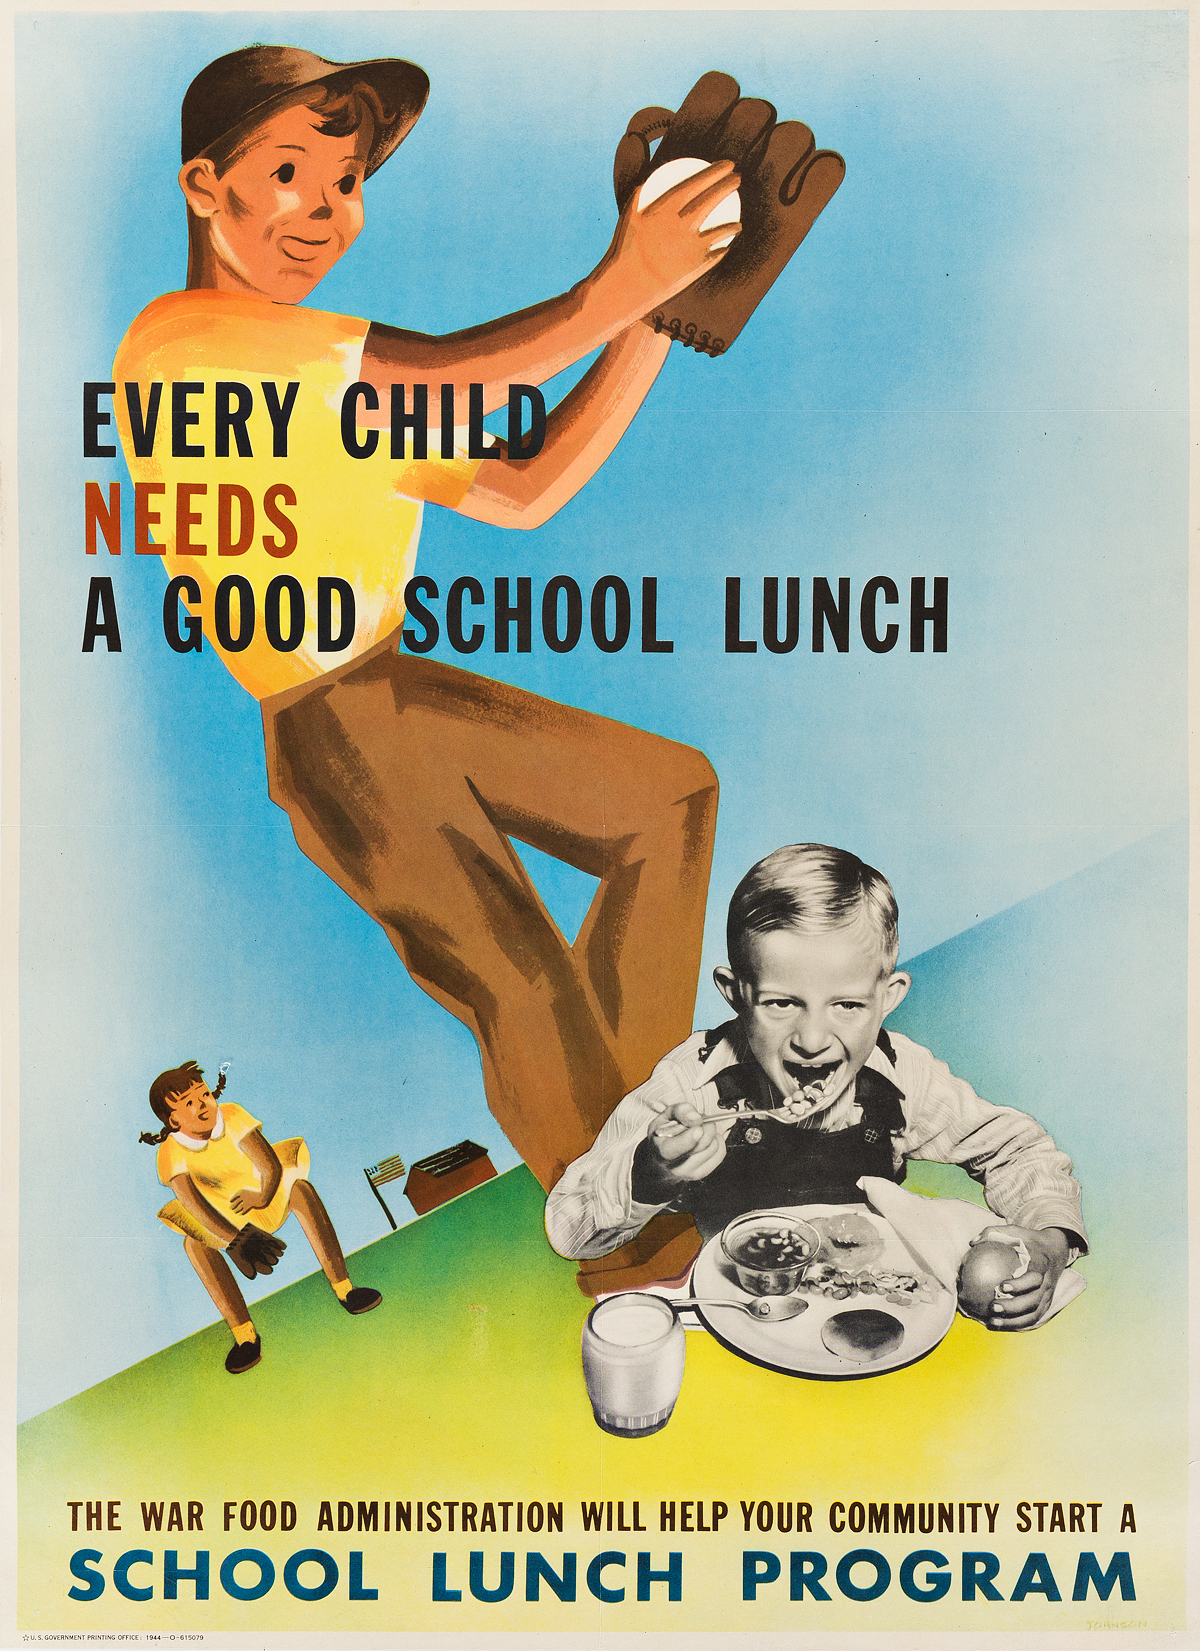 JOHNSON-(DATES-UNKNOWN)-EVERY-CHILD-NEEDS-A-GOOD-SCHOOL-LUNC